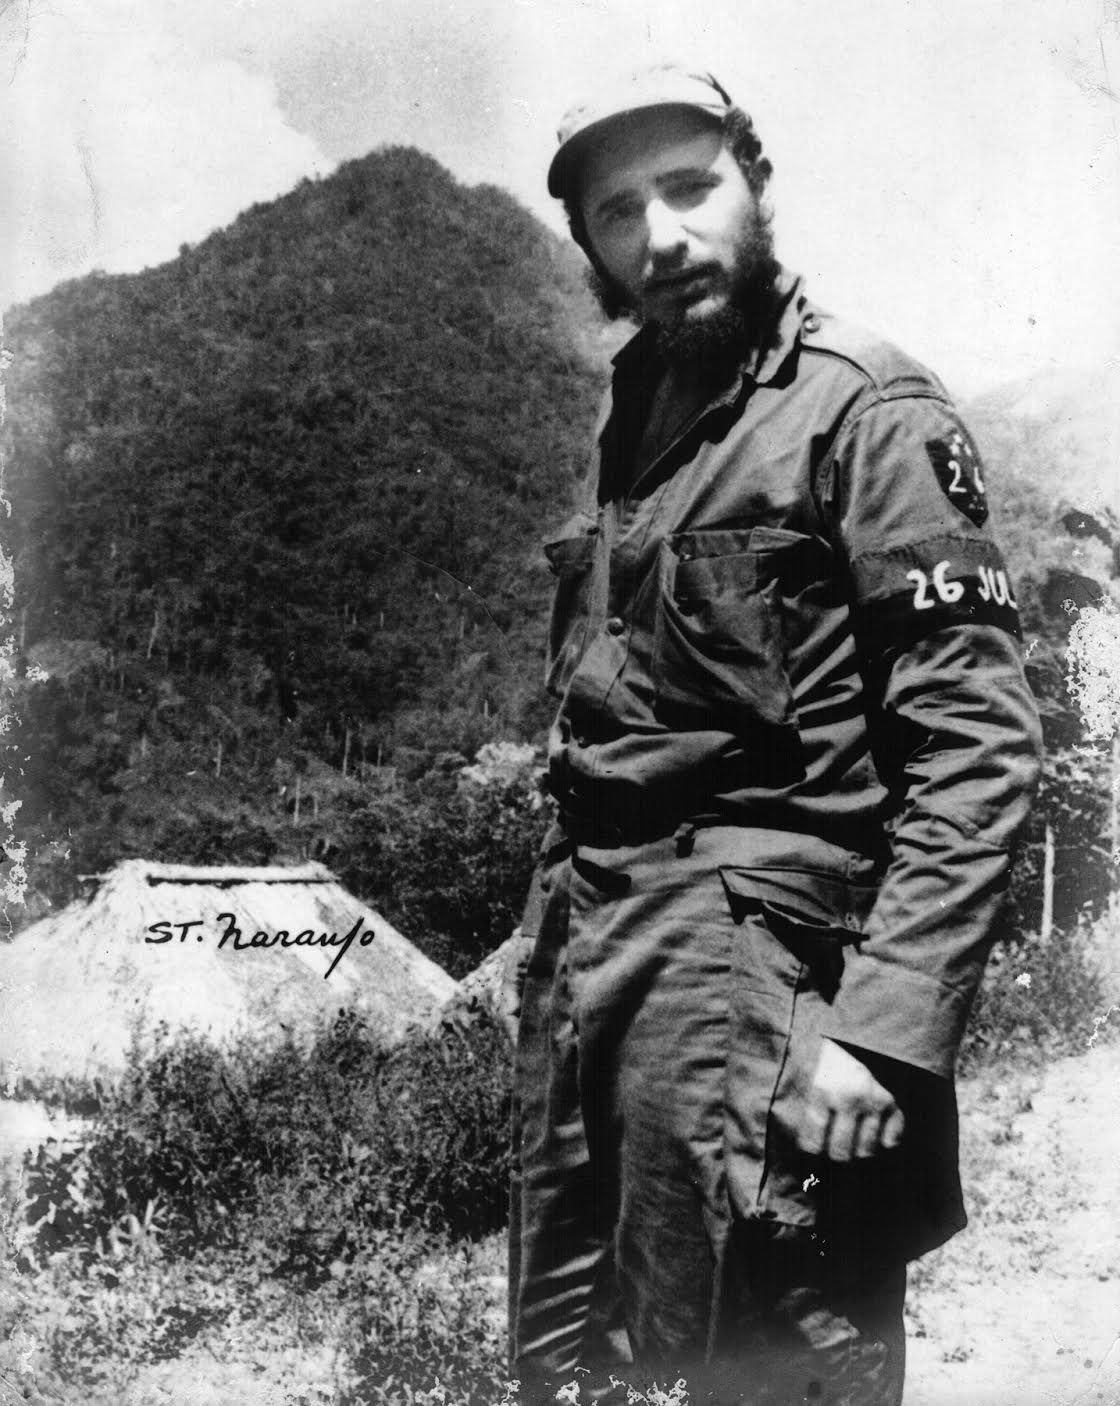 Picture of Fidel Castro in uniform, standing.